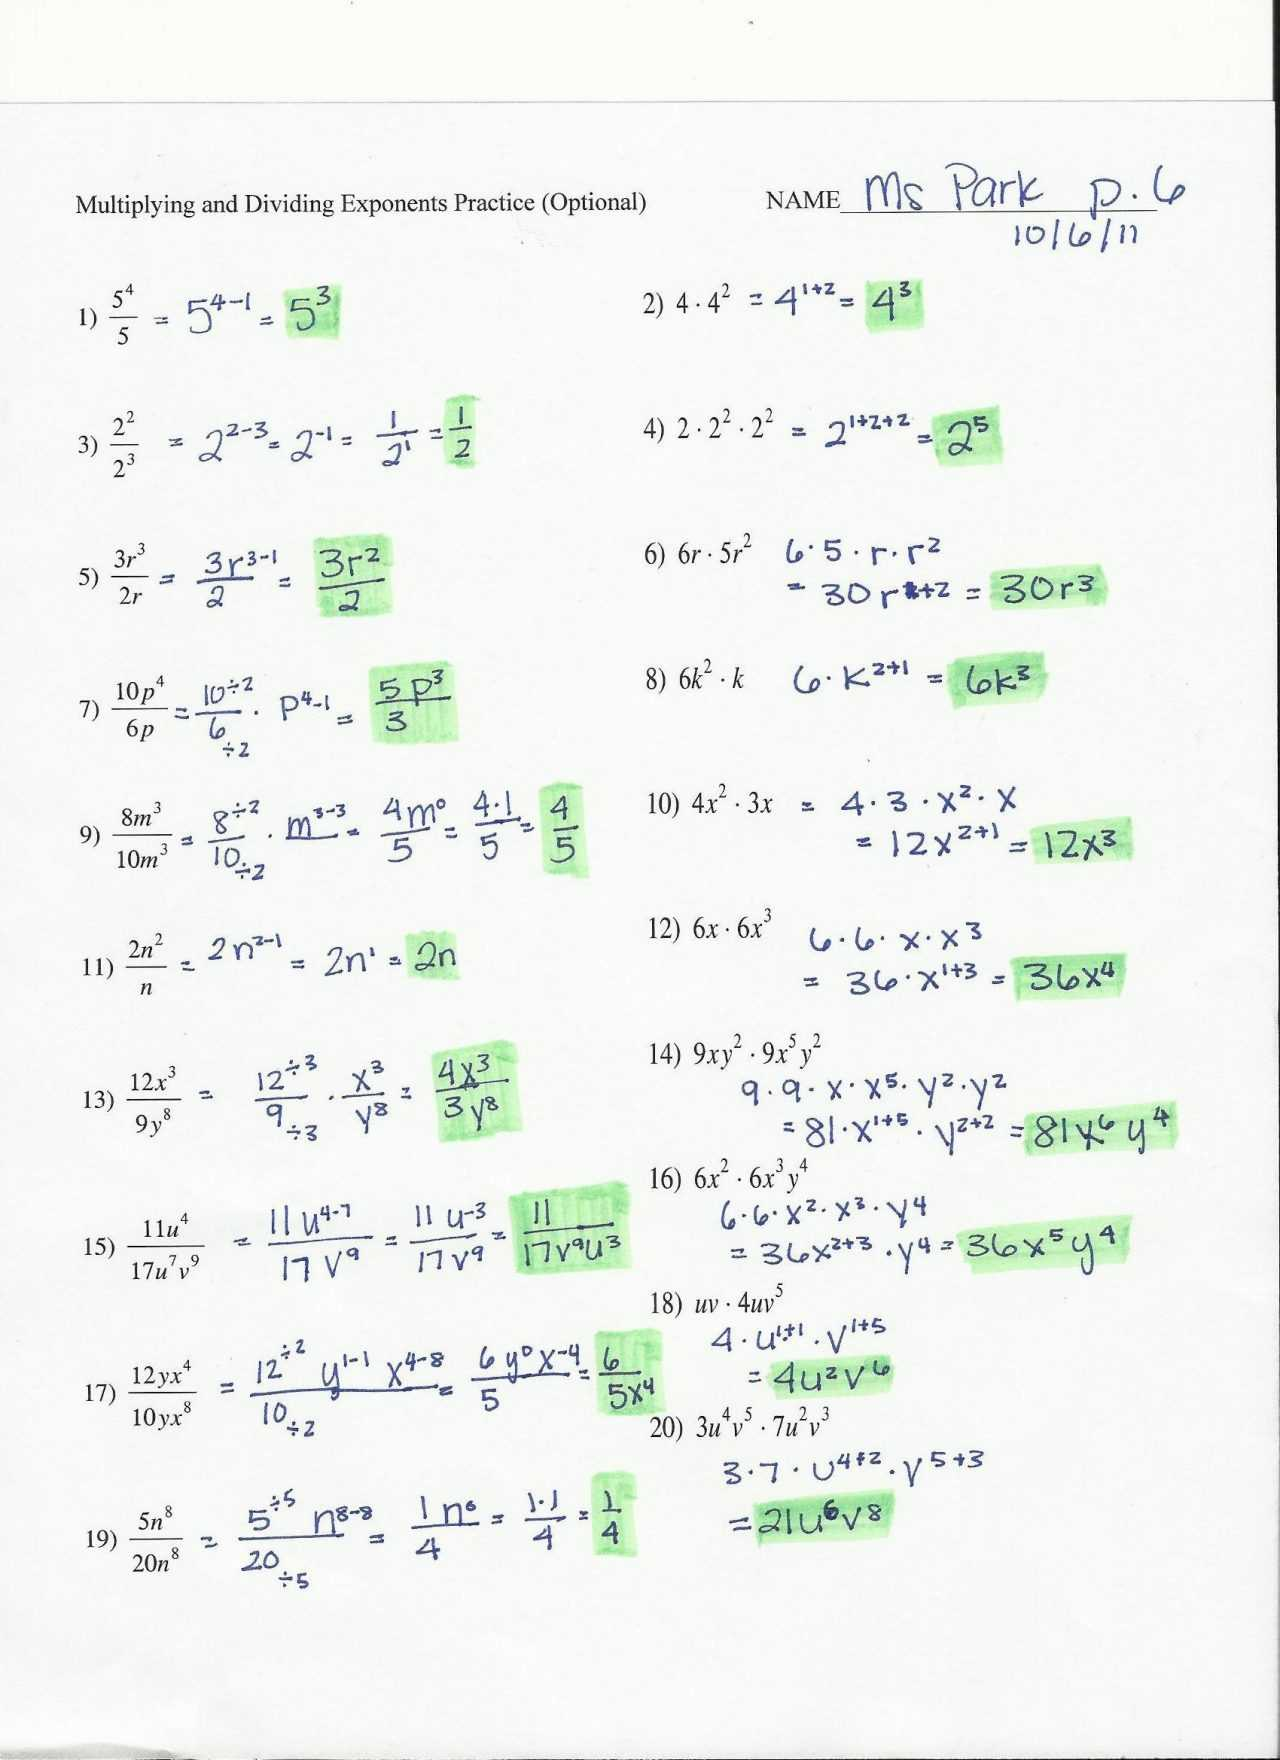 Did You Hear About Math Worksheet Algebra with Pizzazz Answers Also Algebra with Pizzazz Moving Words Page Answers Answer Key Math